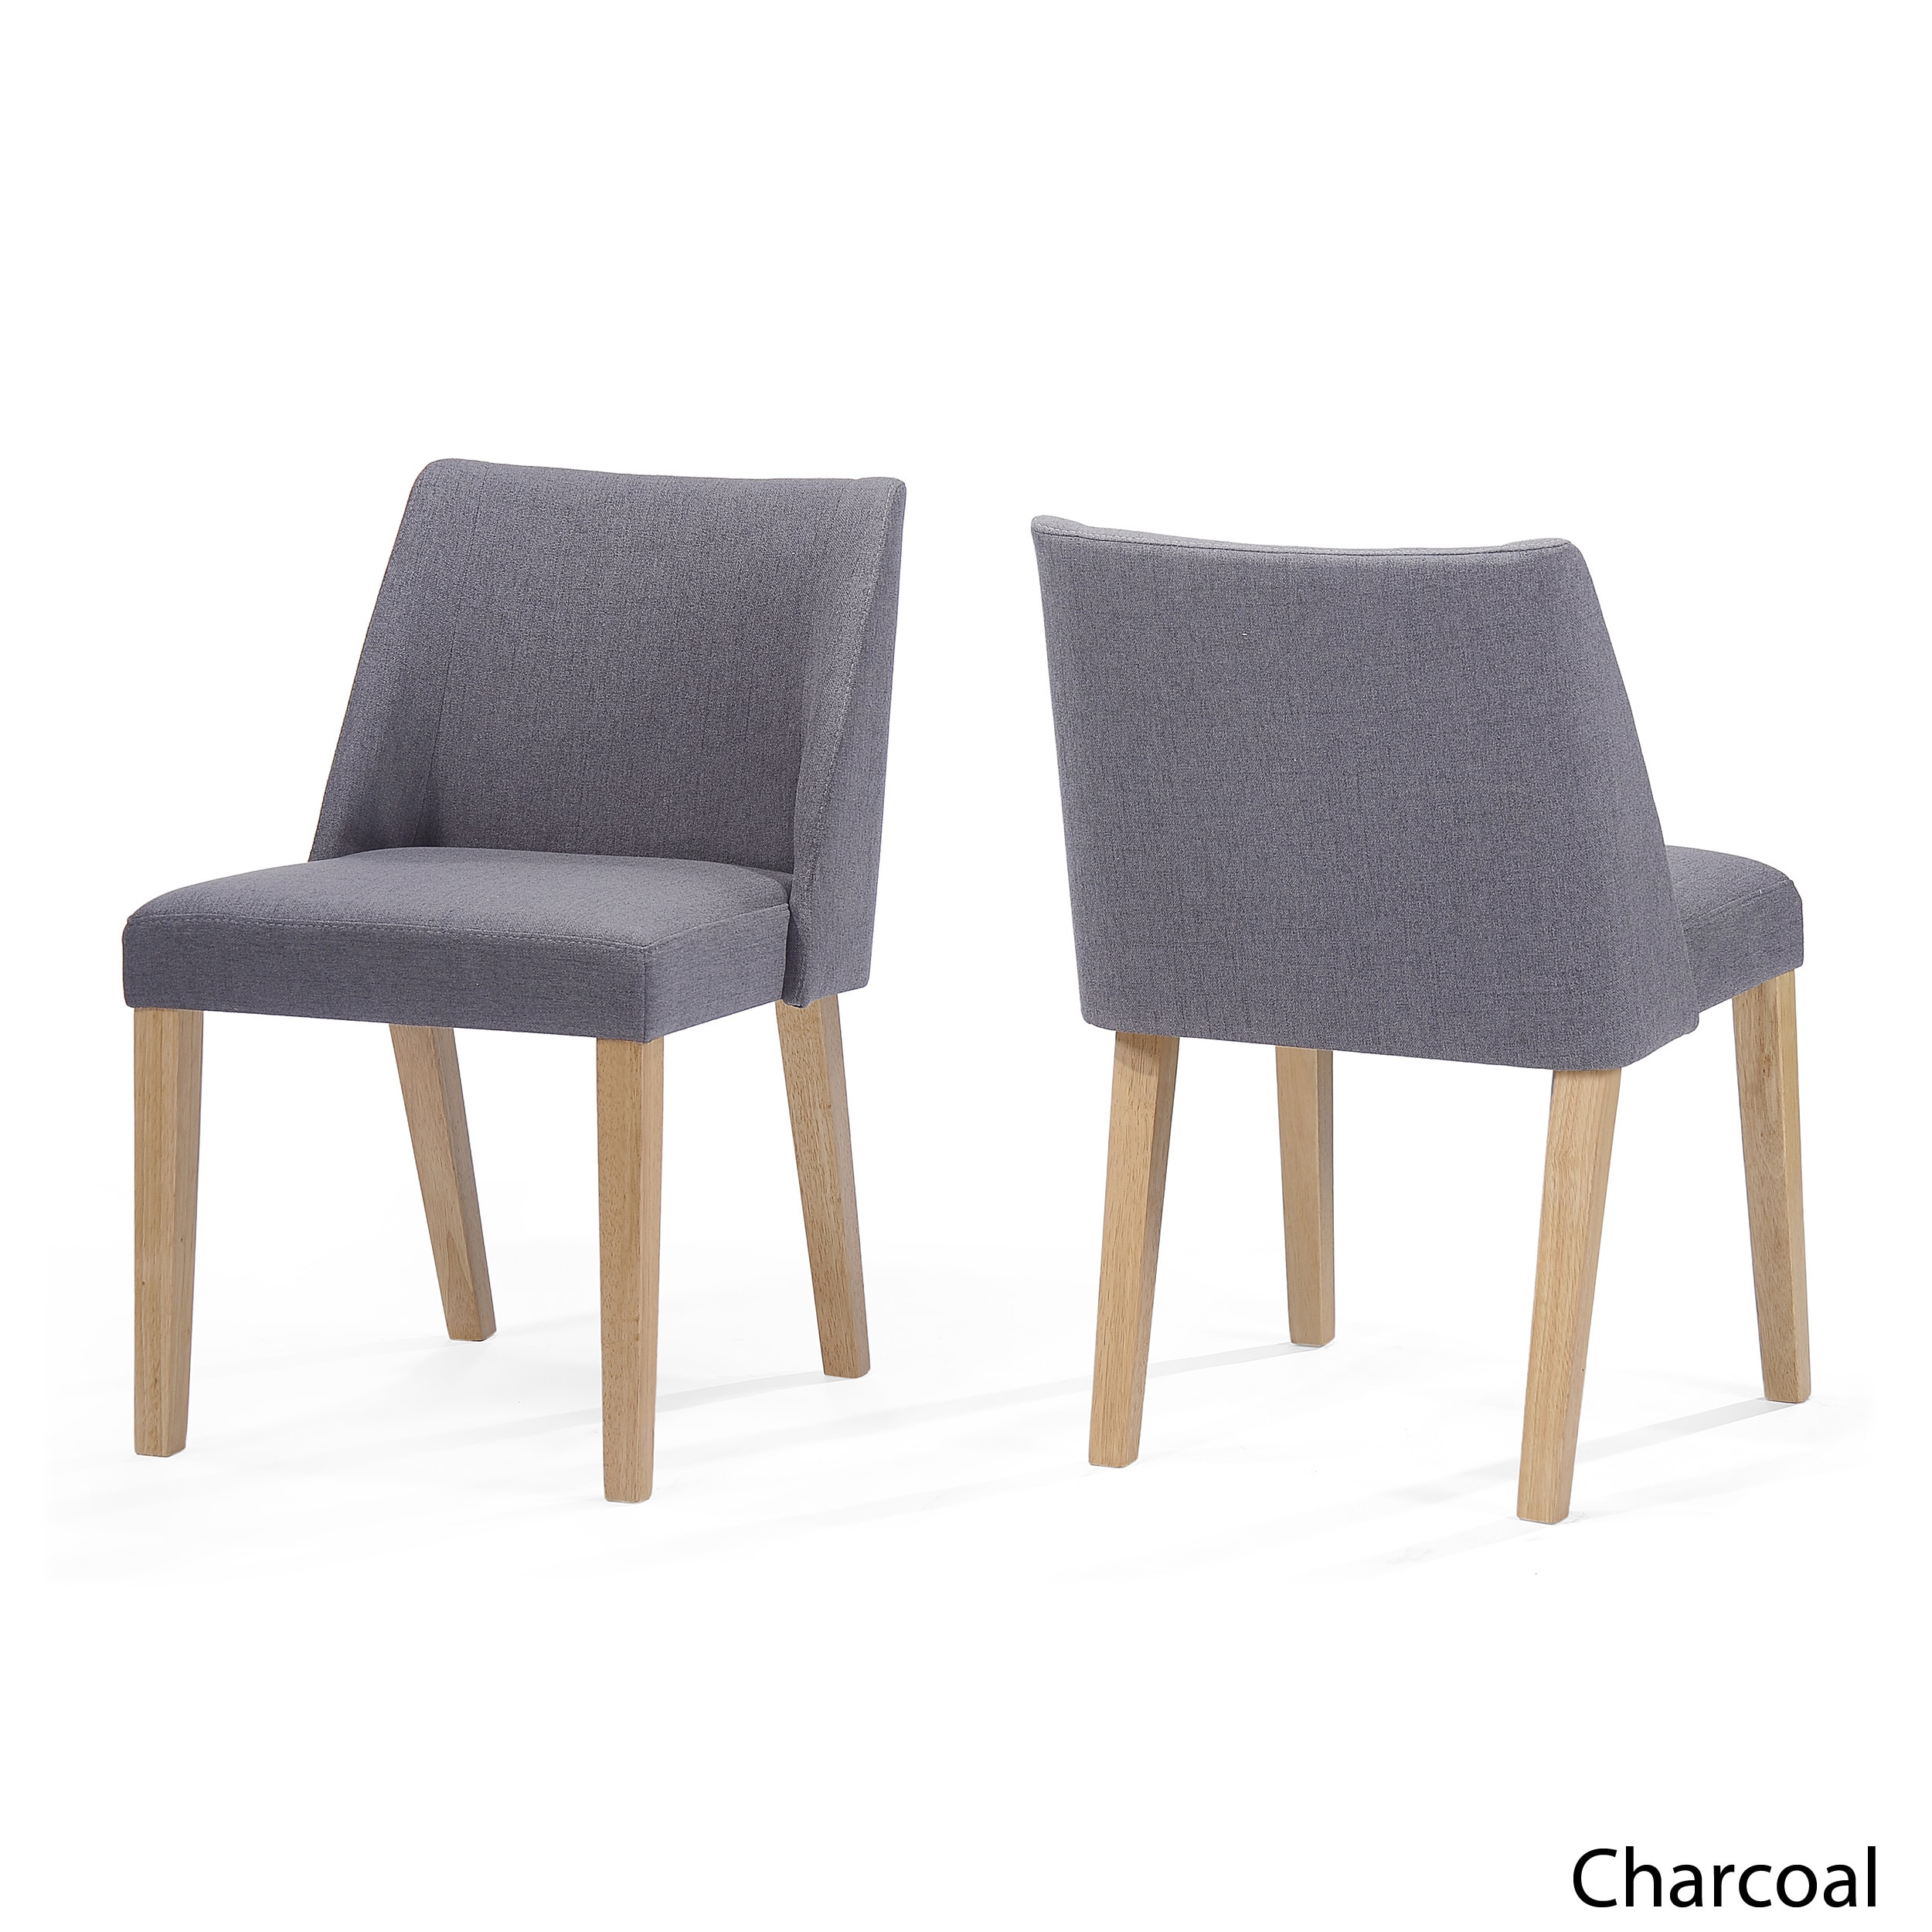 Merveilleux Regina Fabric Armless Side Chair (Set Of 2) By Christopher Knight Home    Free Shipping Today   Overstock   22557879